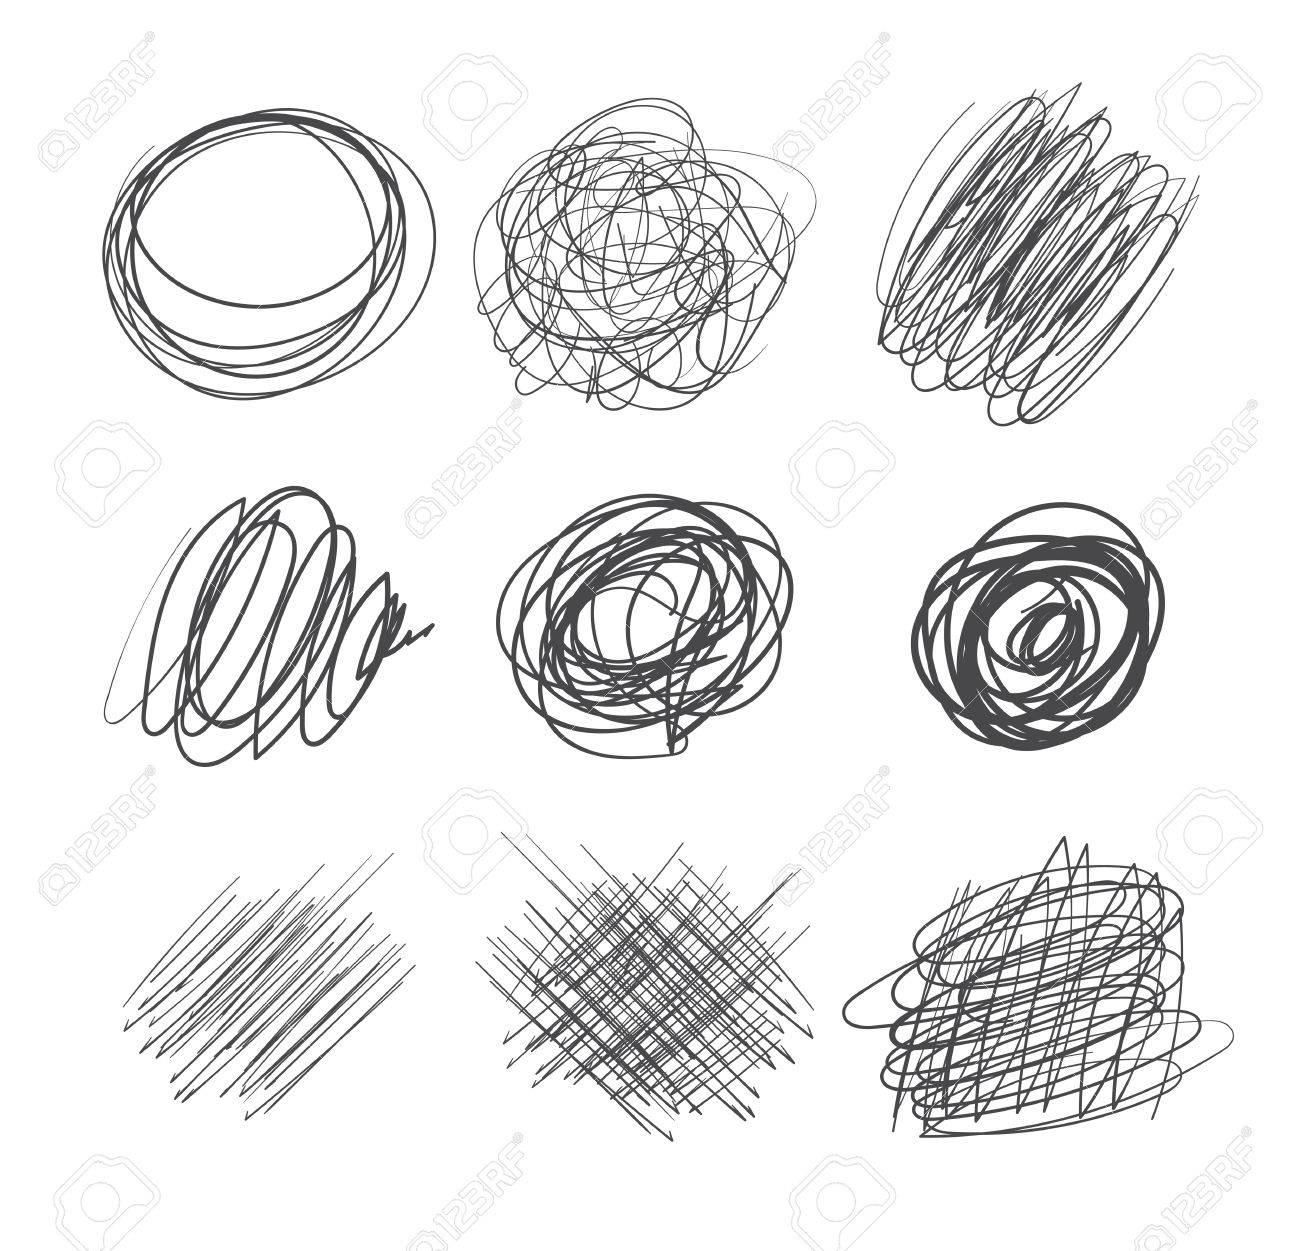 Abstract chaotic round sketch pencil drawing for your design vector illustration isolated on